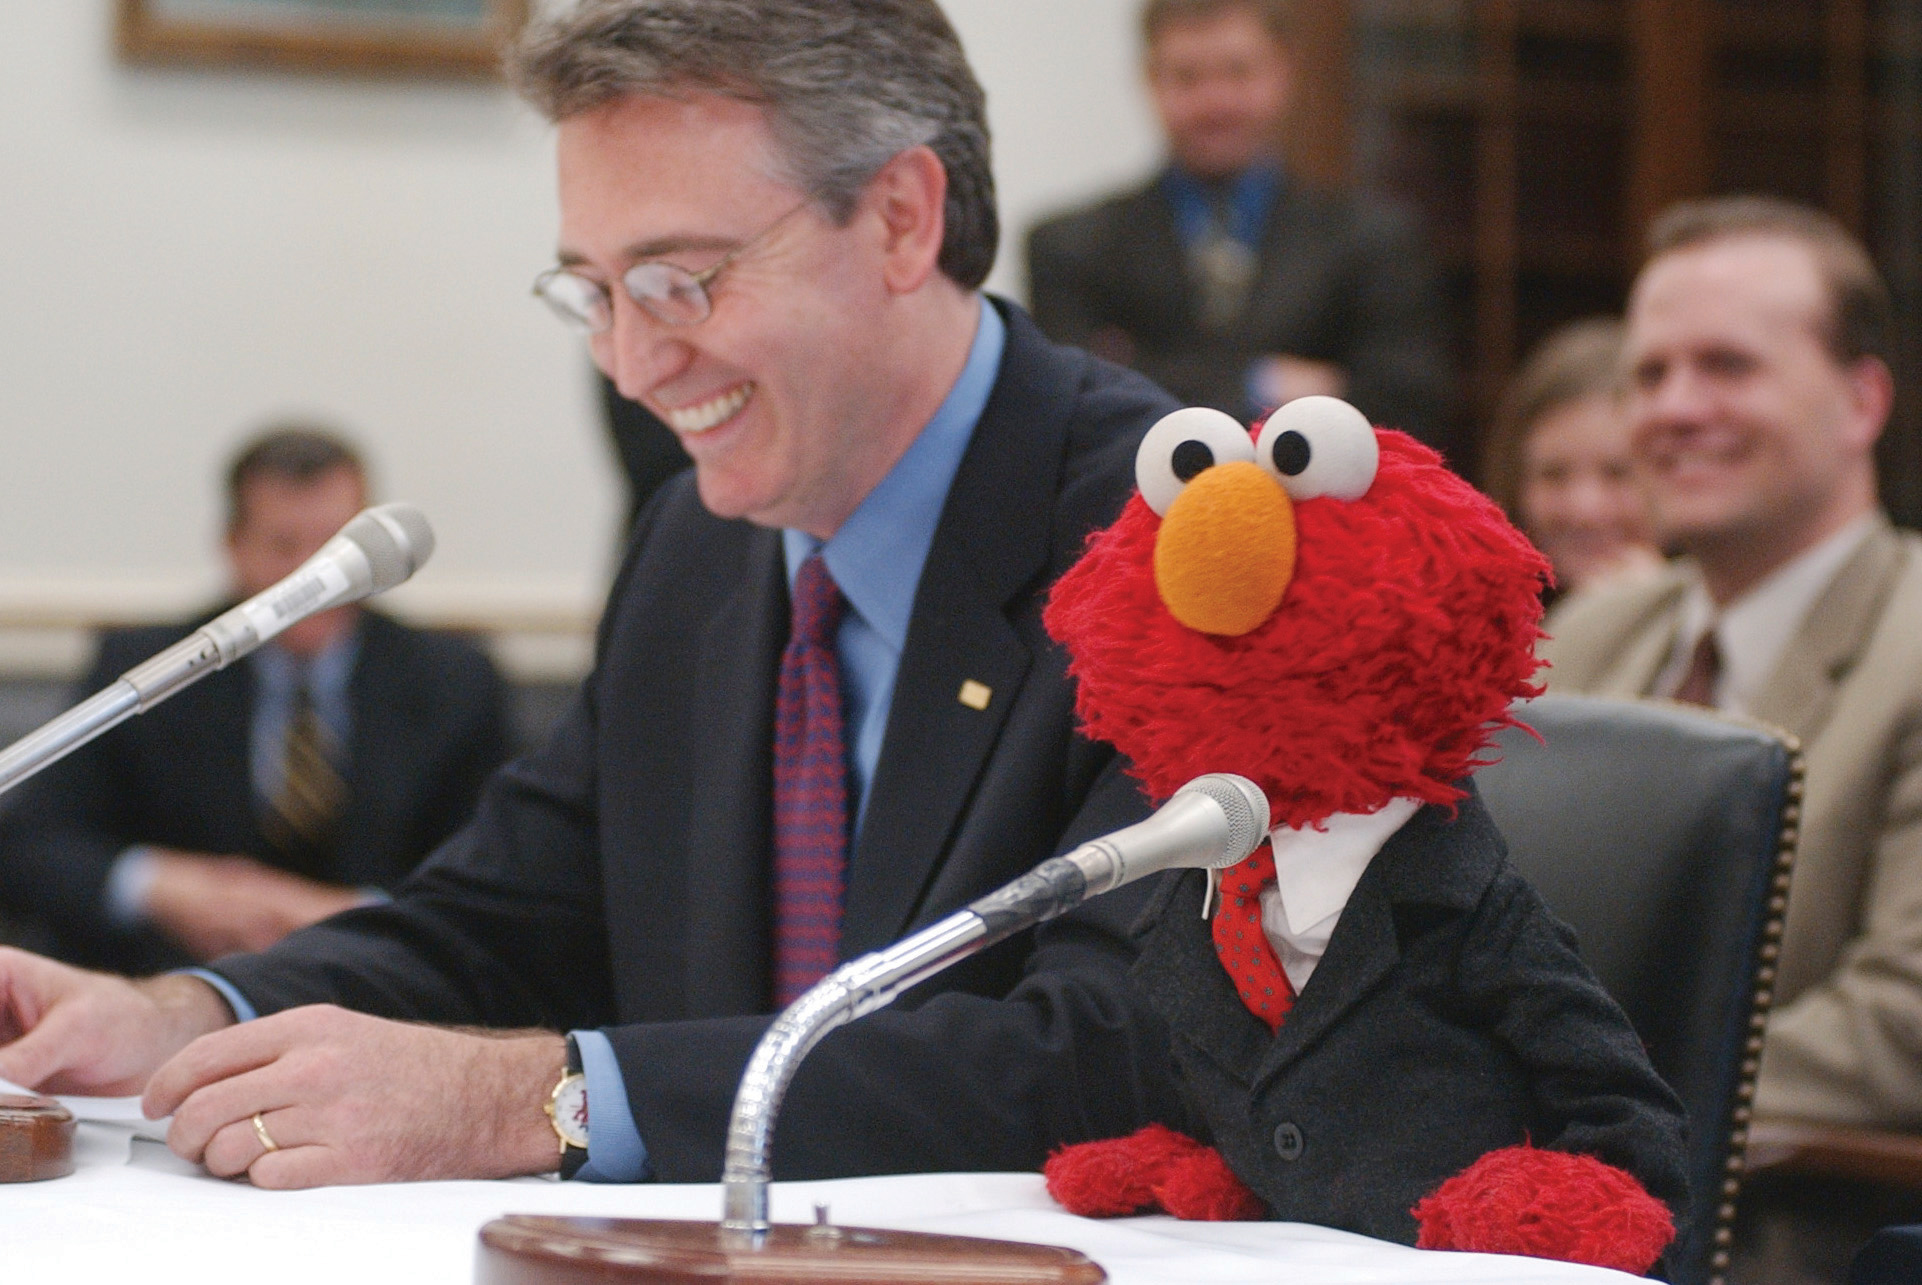 Image result for elmo in suit